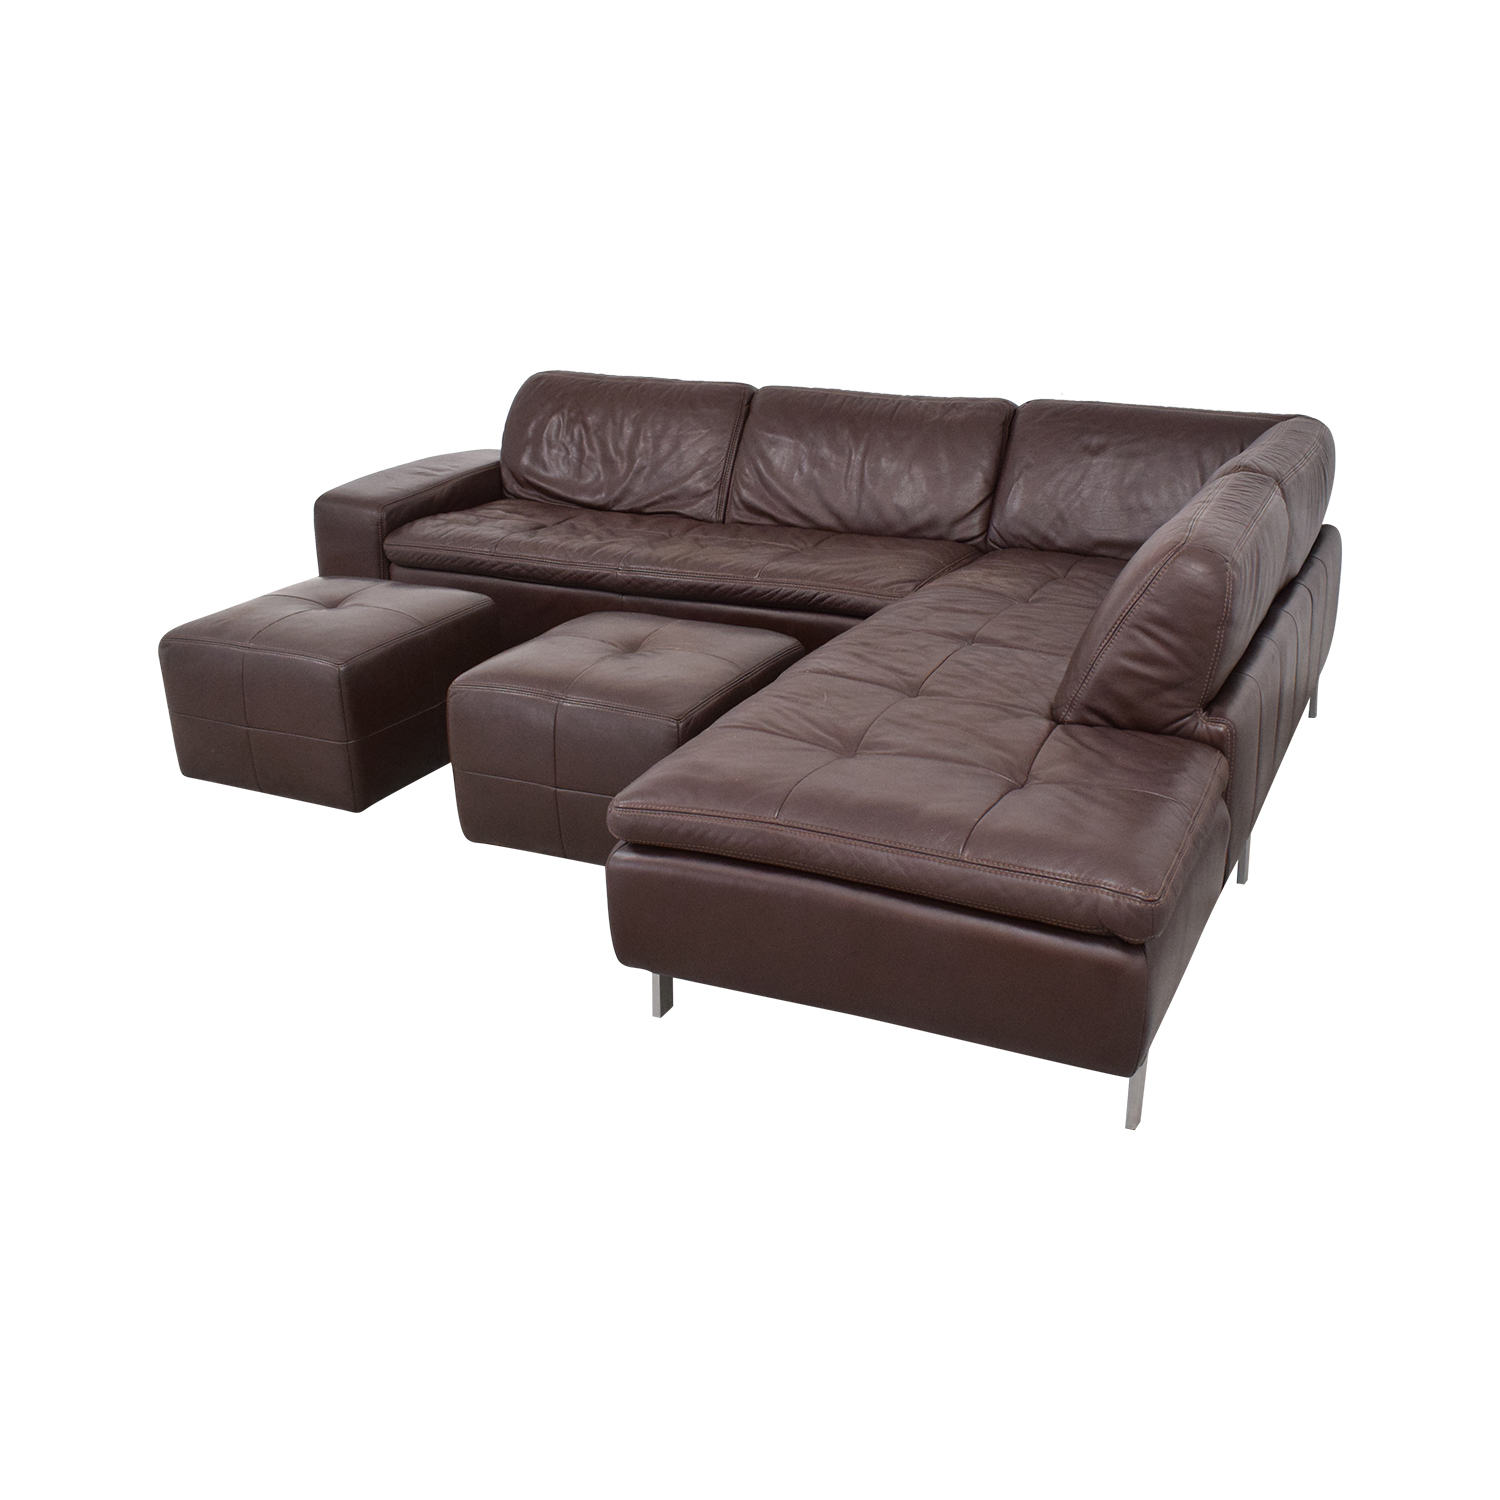 shop Bloomingdale's Sectional Sofa with Chaise and Ottomans Bloomingdale's Sofas